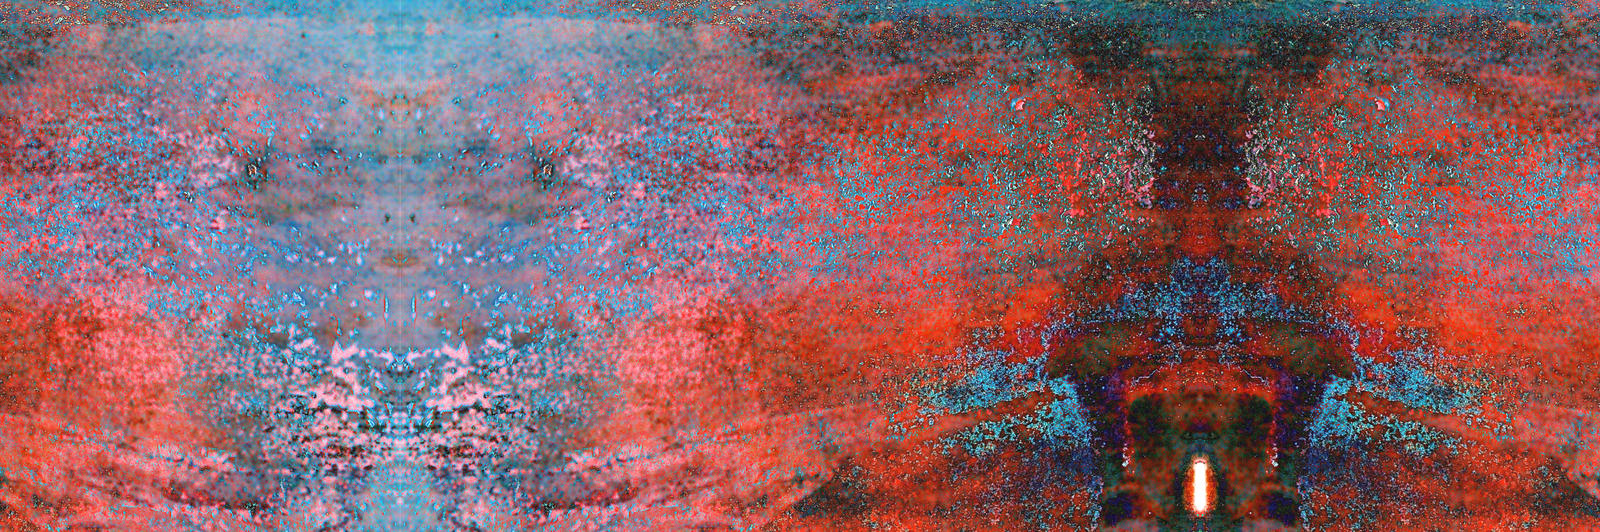 Wide Screen Red Door Abstract  Expressionism by aegiandyad